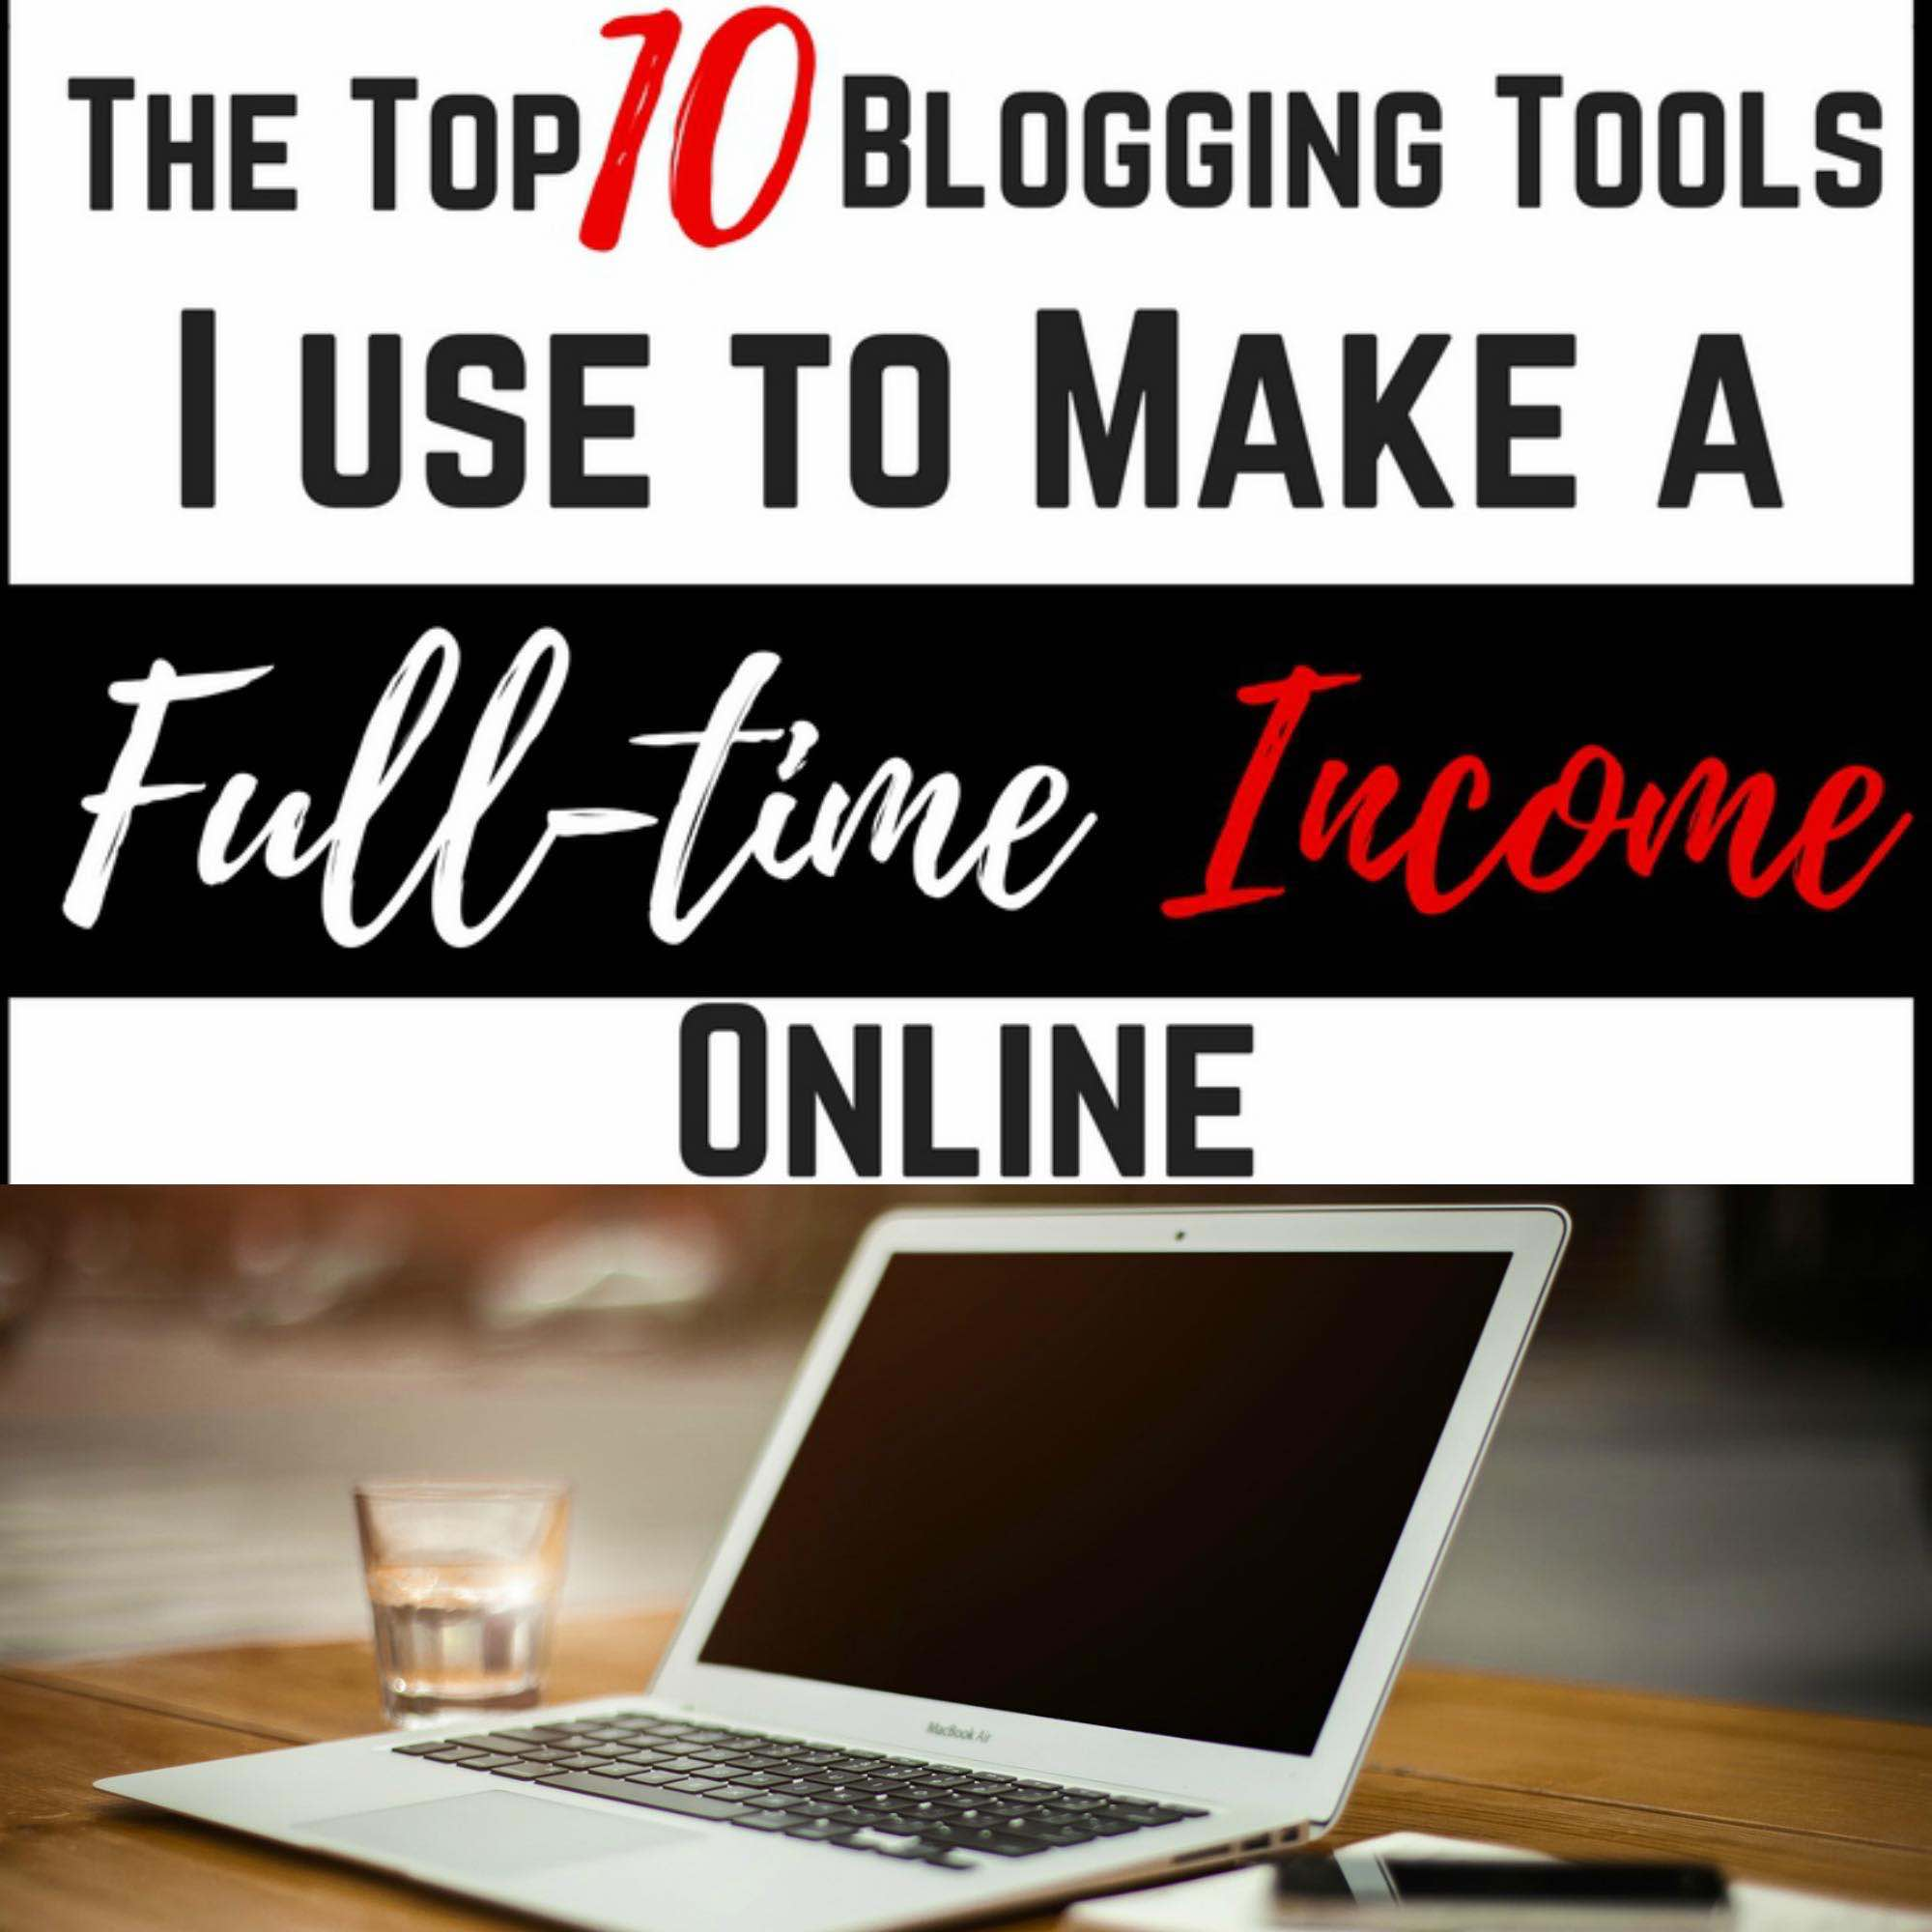 The Top 10 Blogging Tools I Use To Make a Full Time Income Online